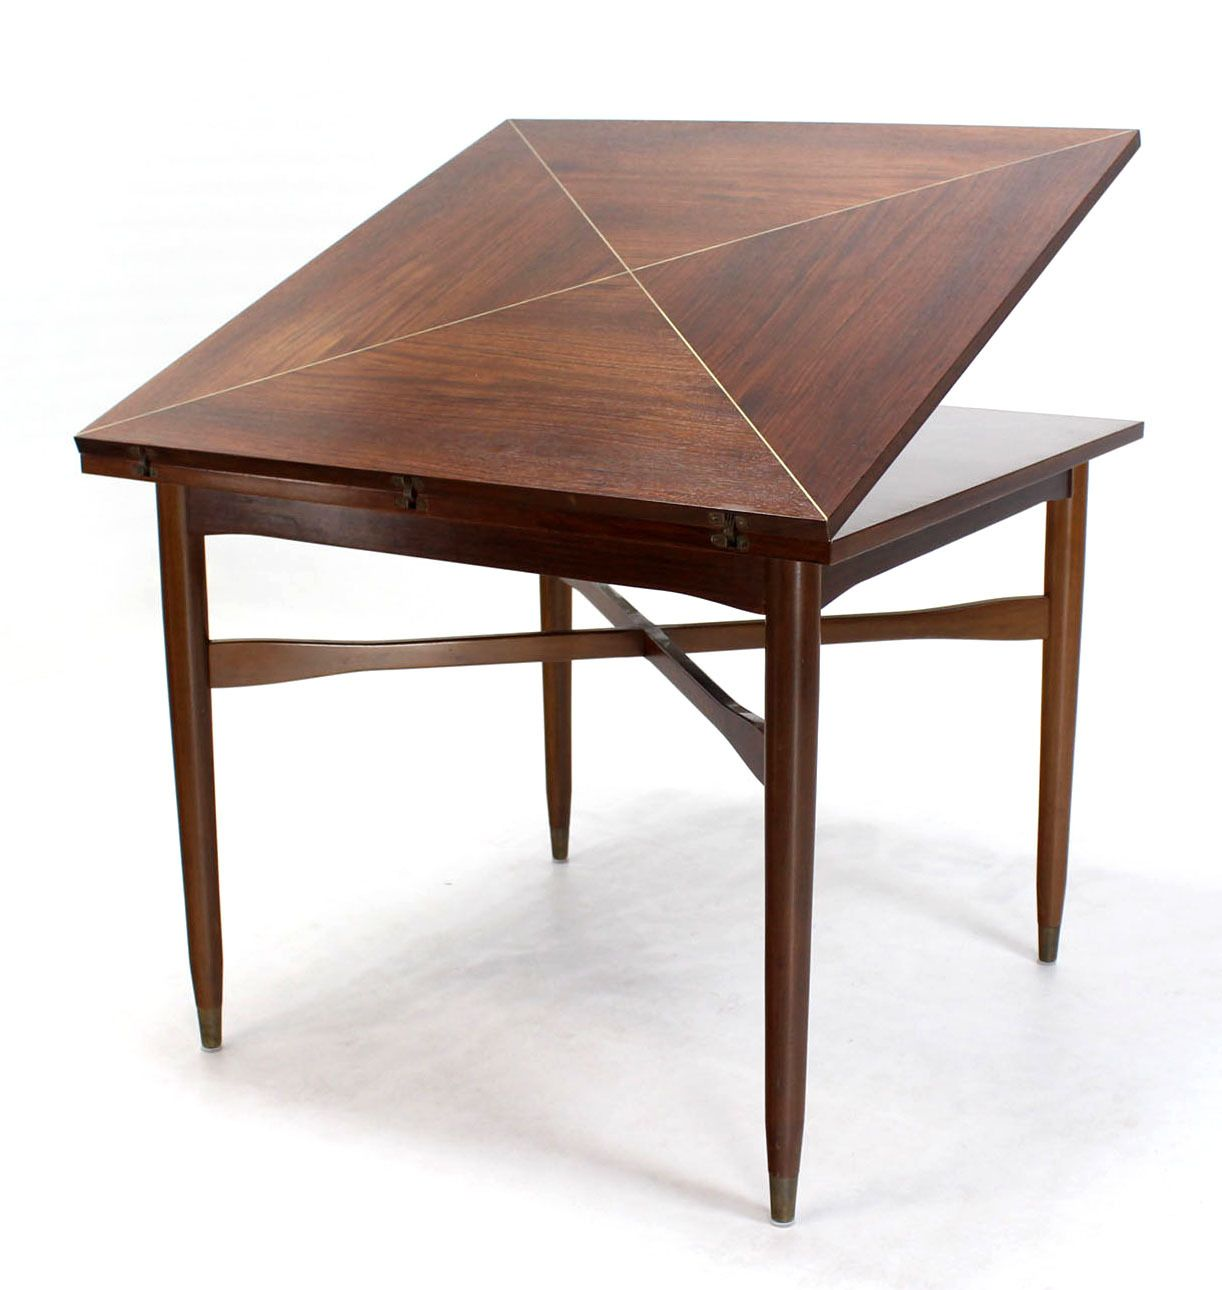 dining room game tables. walnut-top with brass inlay, mid-century modern expandable game table dining room tables